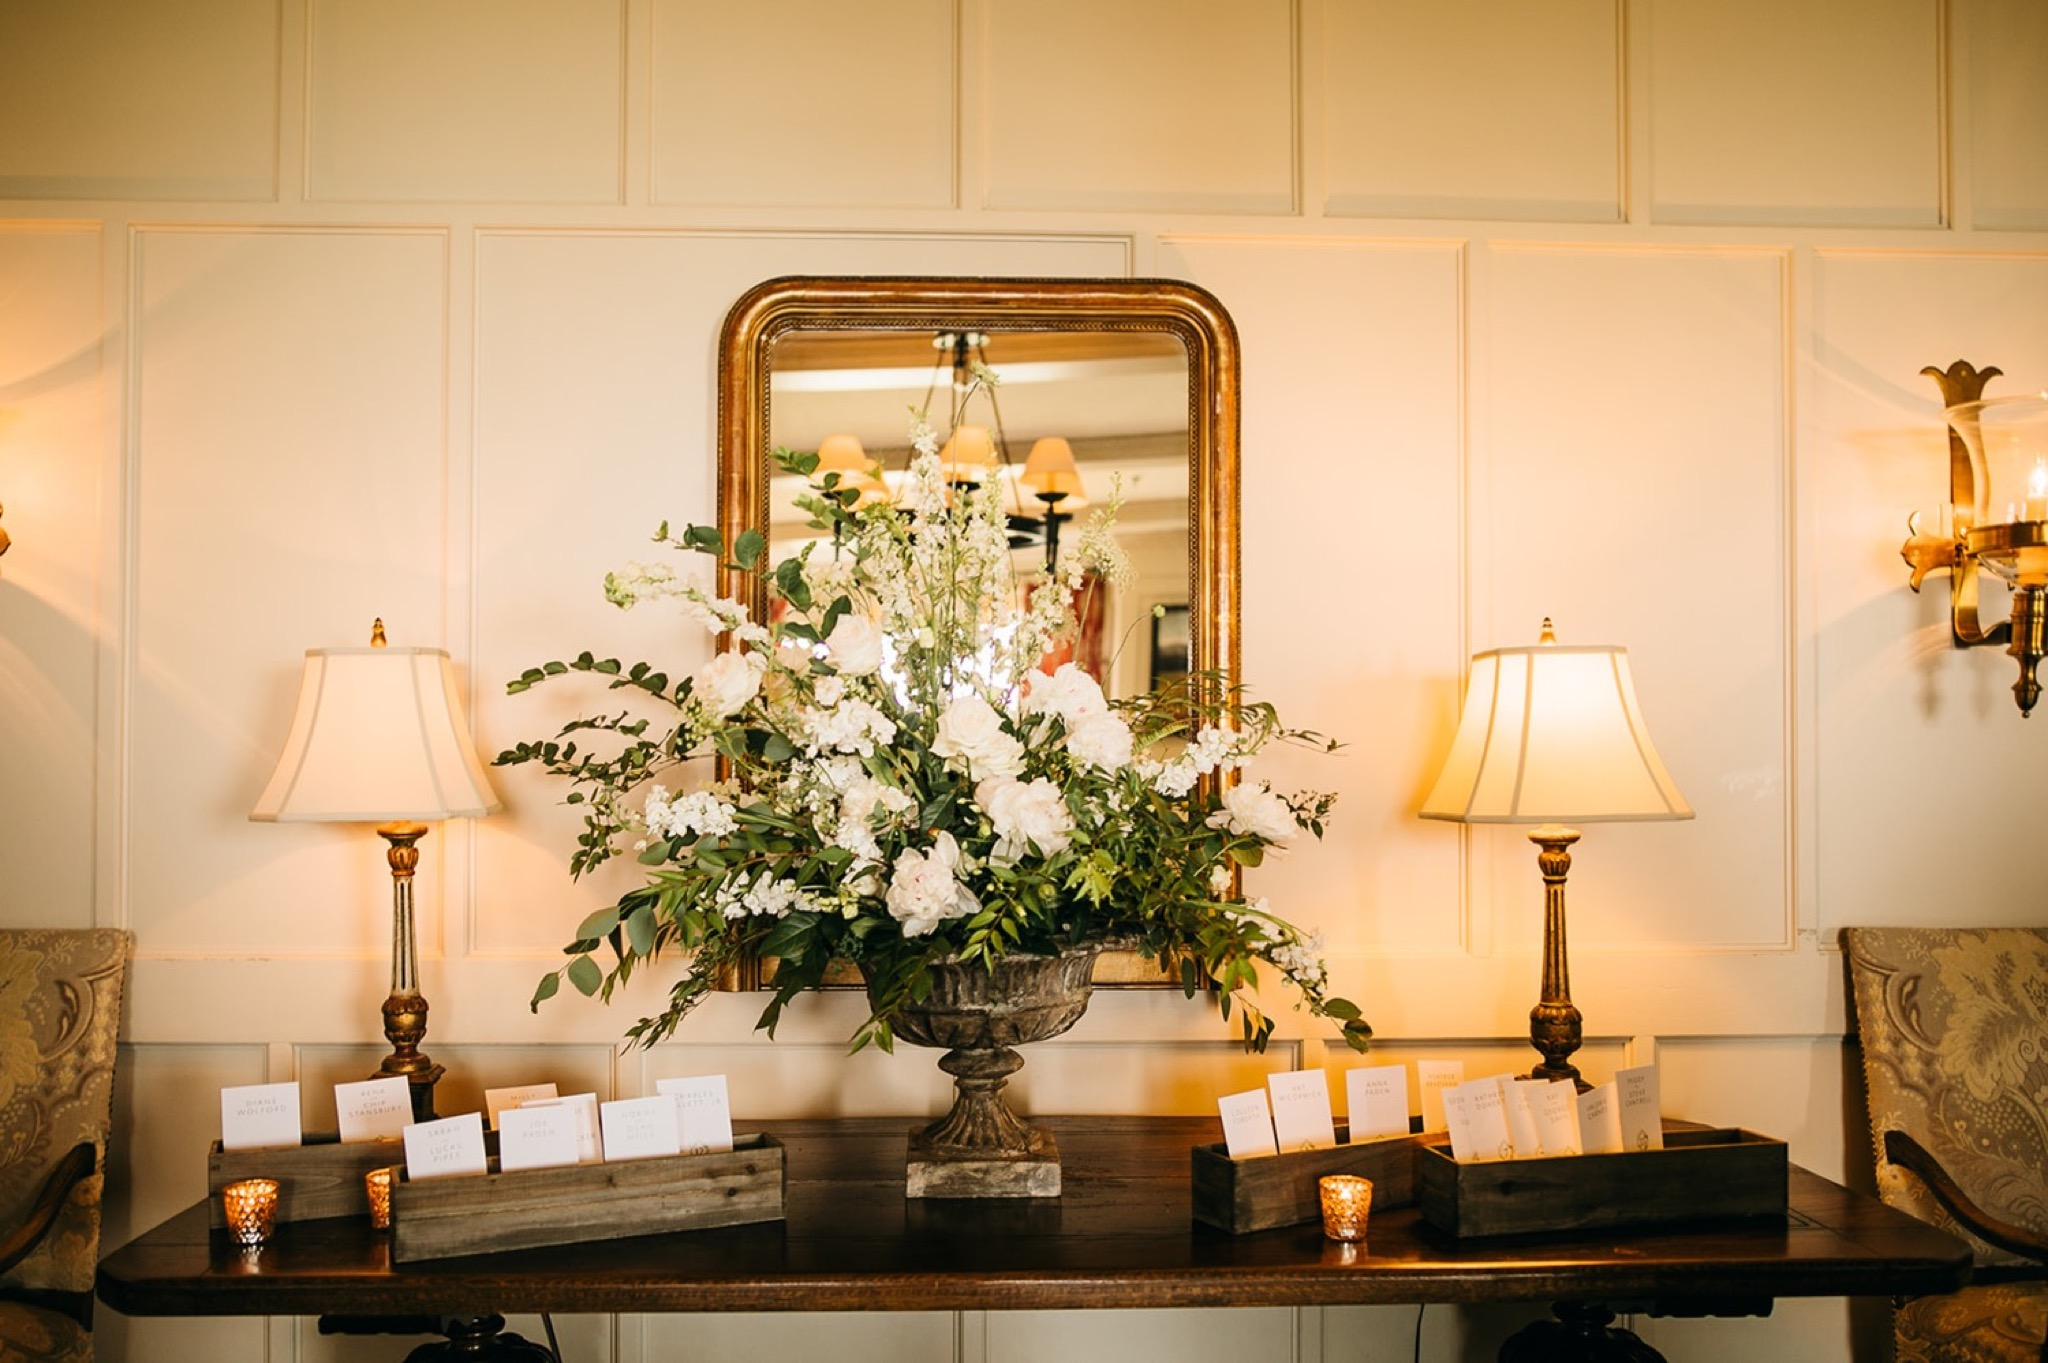 large white and green floral arrangement sits on a table in front of a mirror